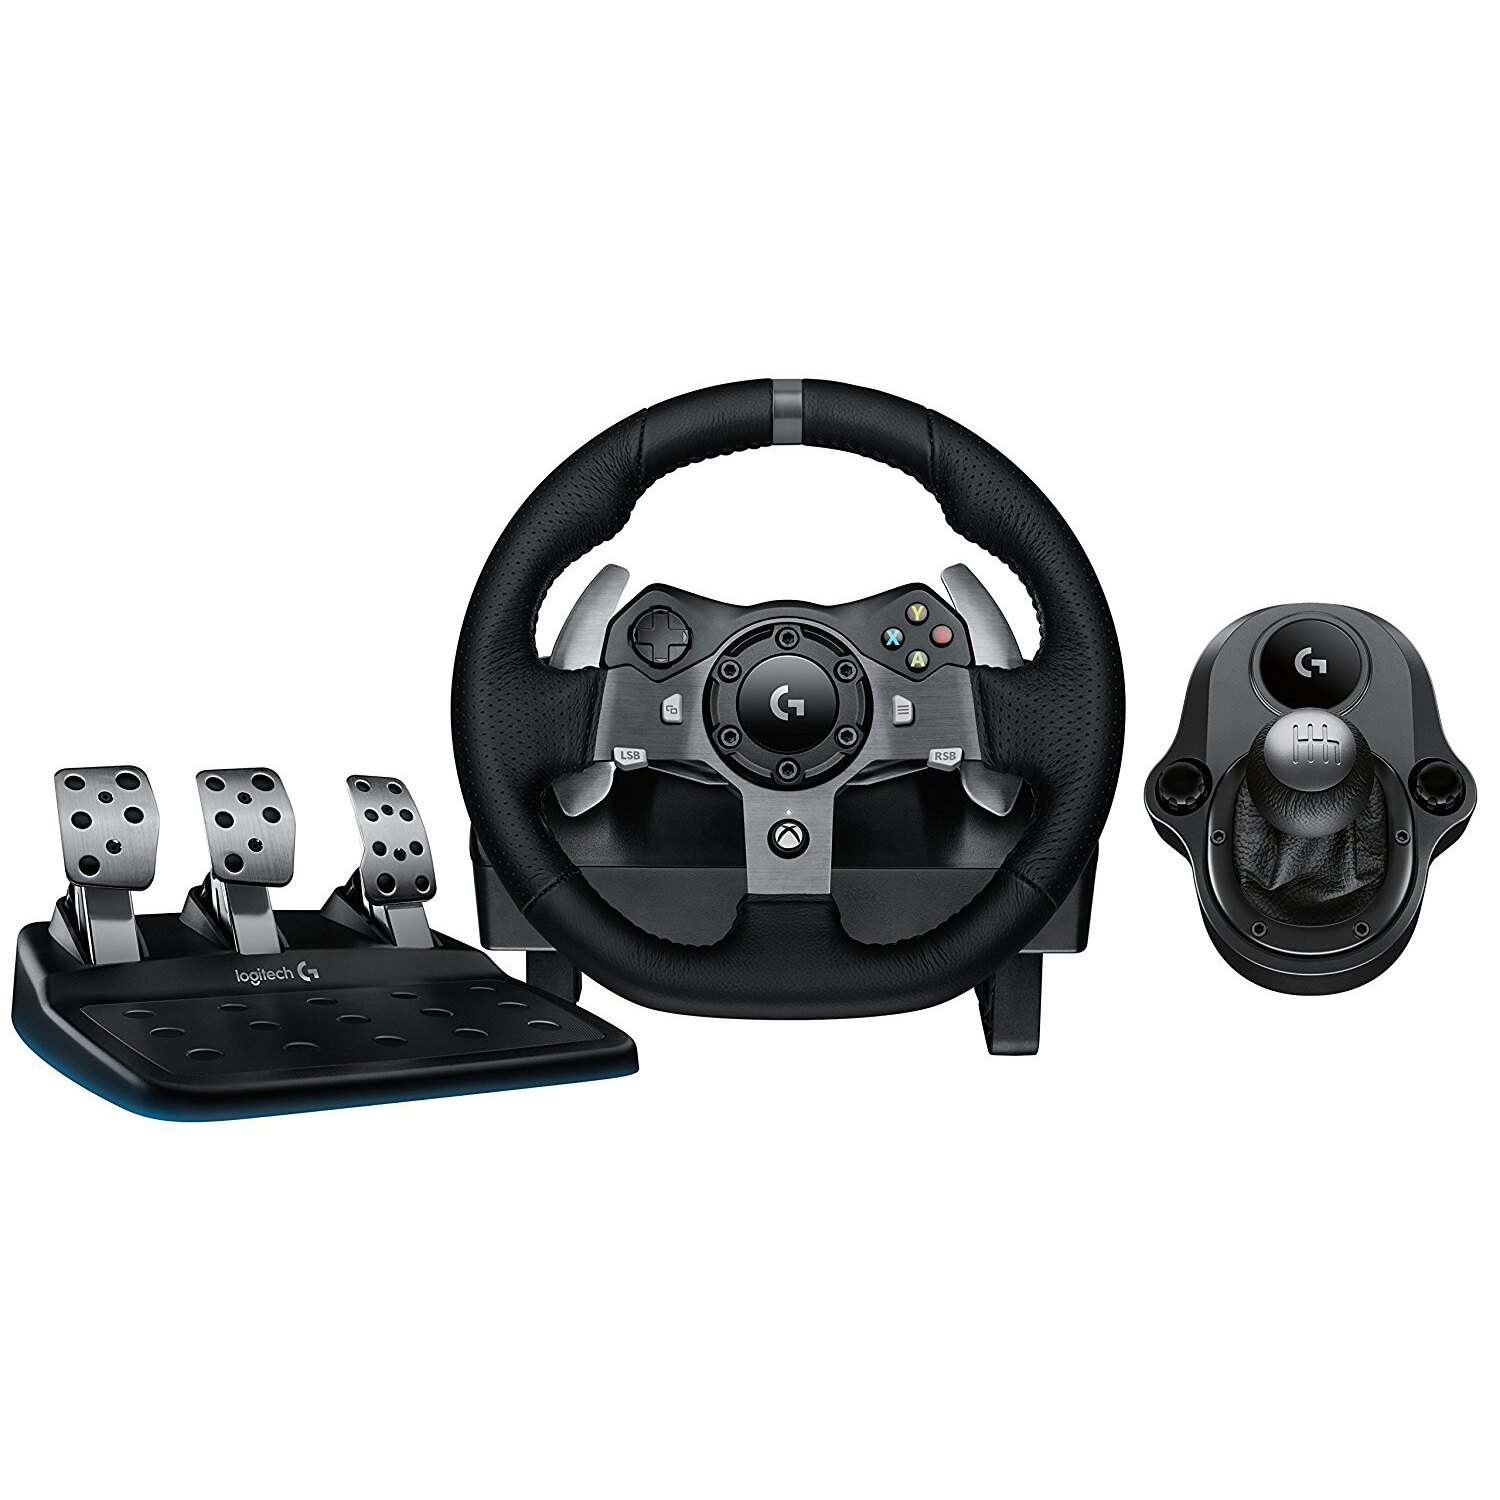 bb6a0834579 Logitech G920 Driving Force Racing Wheel + Logitech G Driving Force Shifter  Bundle 0